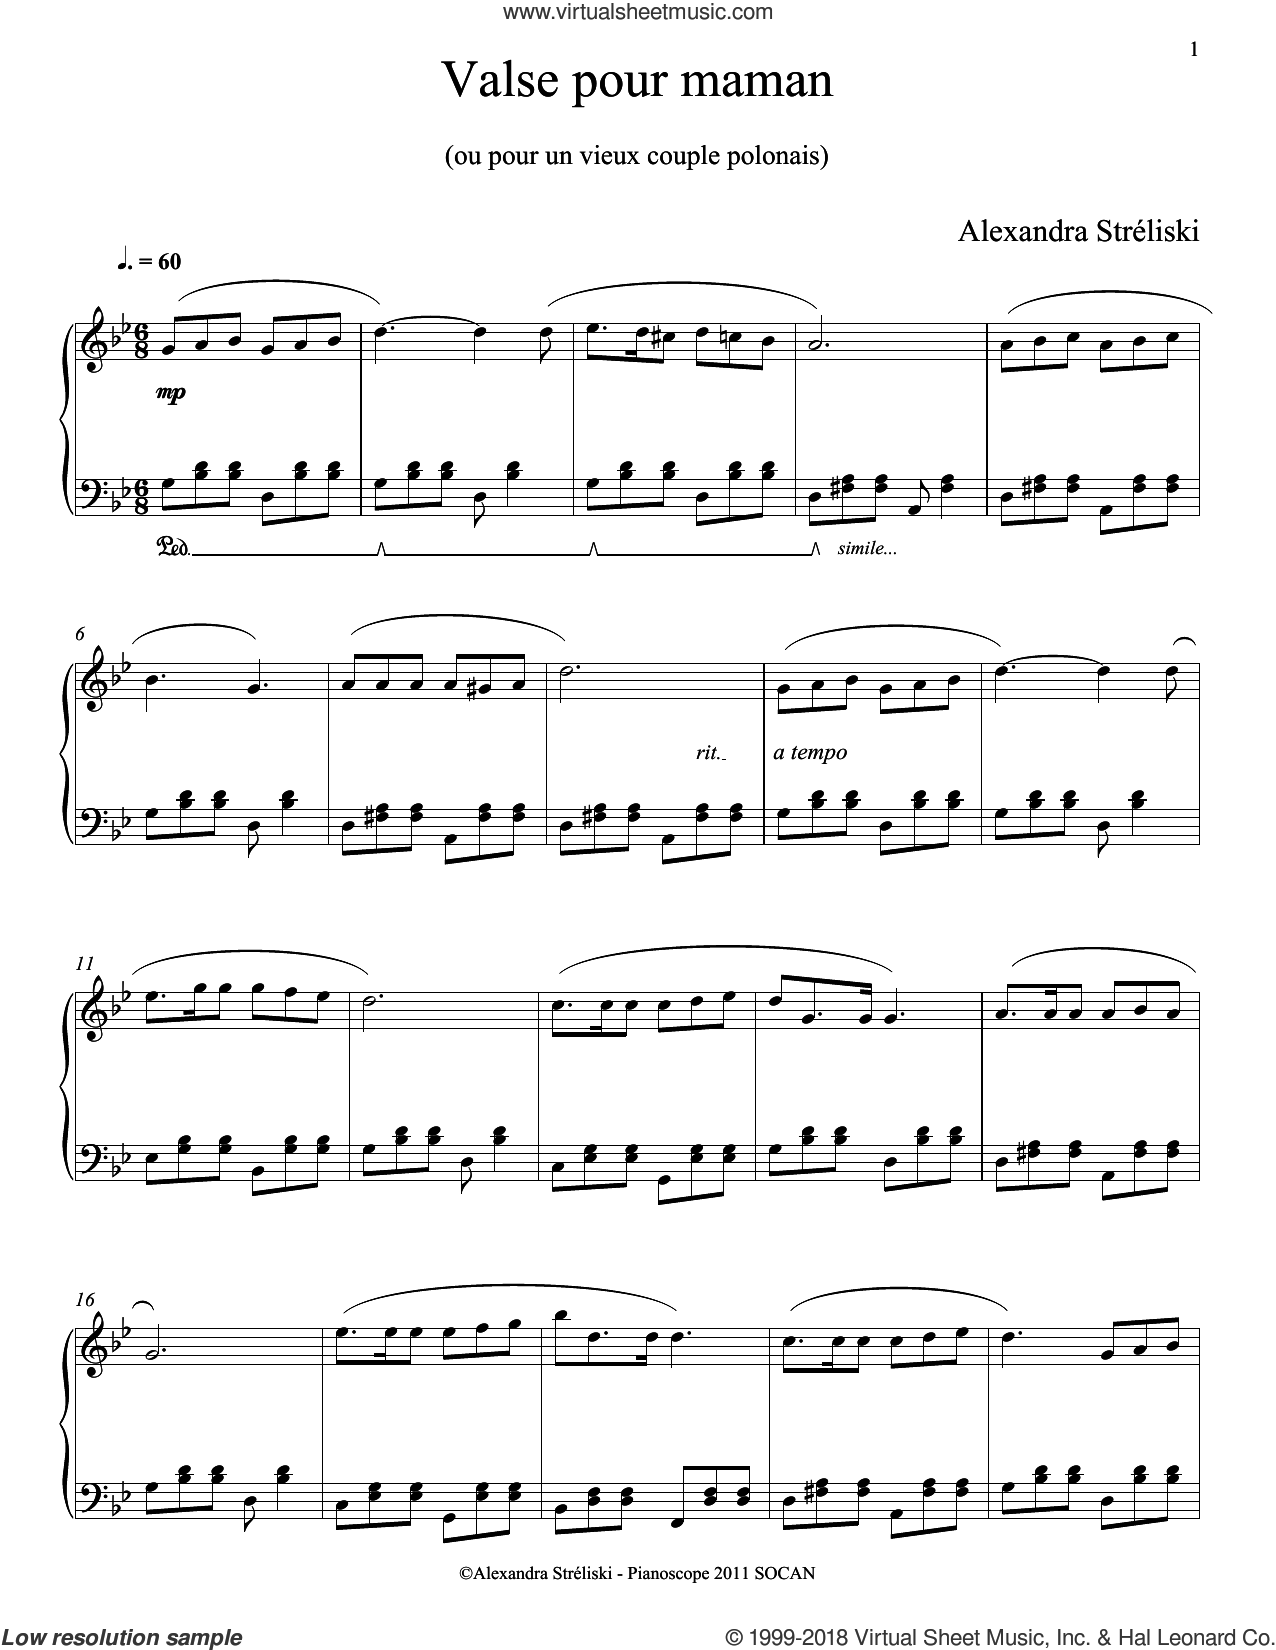 Valse pour maman sheet music for piano solo by Alexandra Streliski, classical score, intermediate skill level